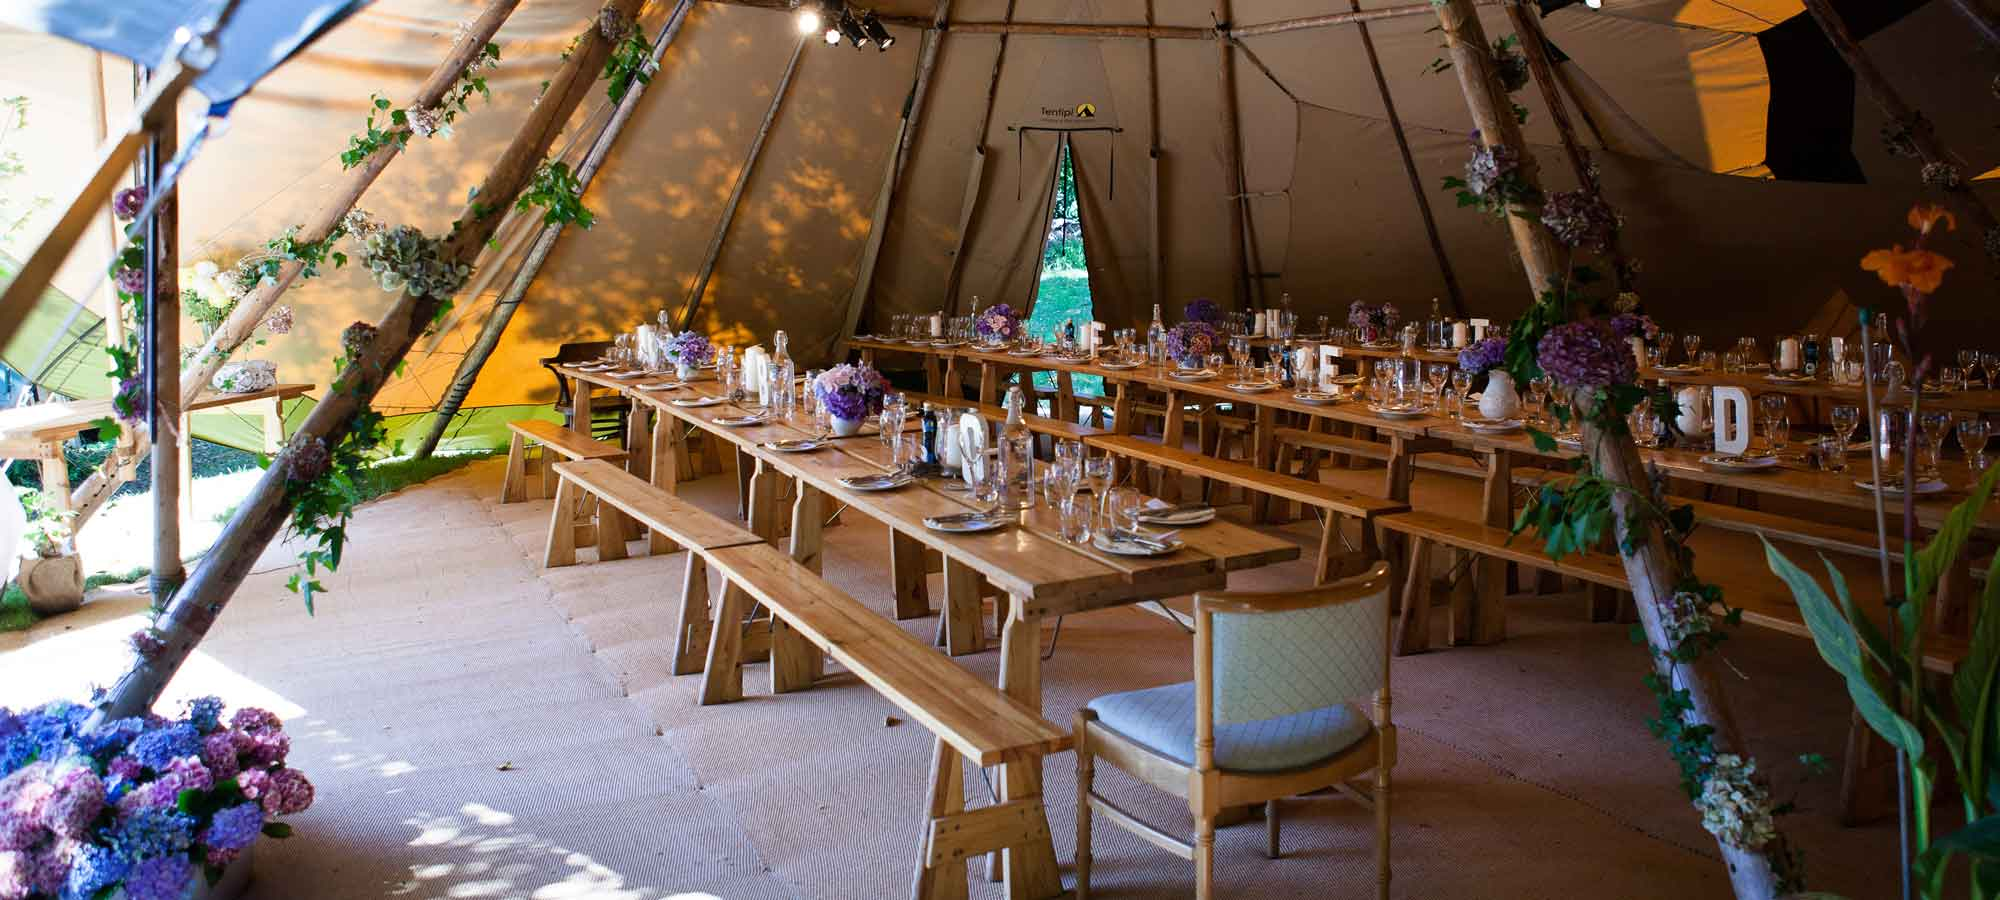 Tentipi tables and benches - giant hat kata tipi for sale